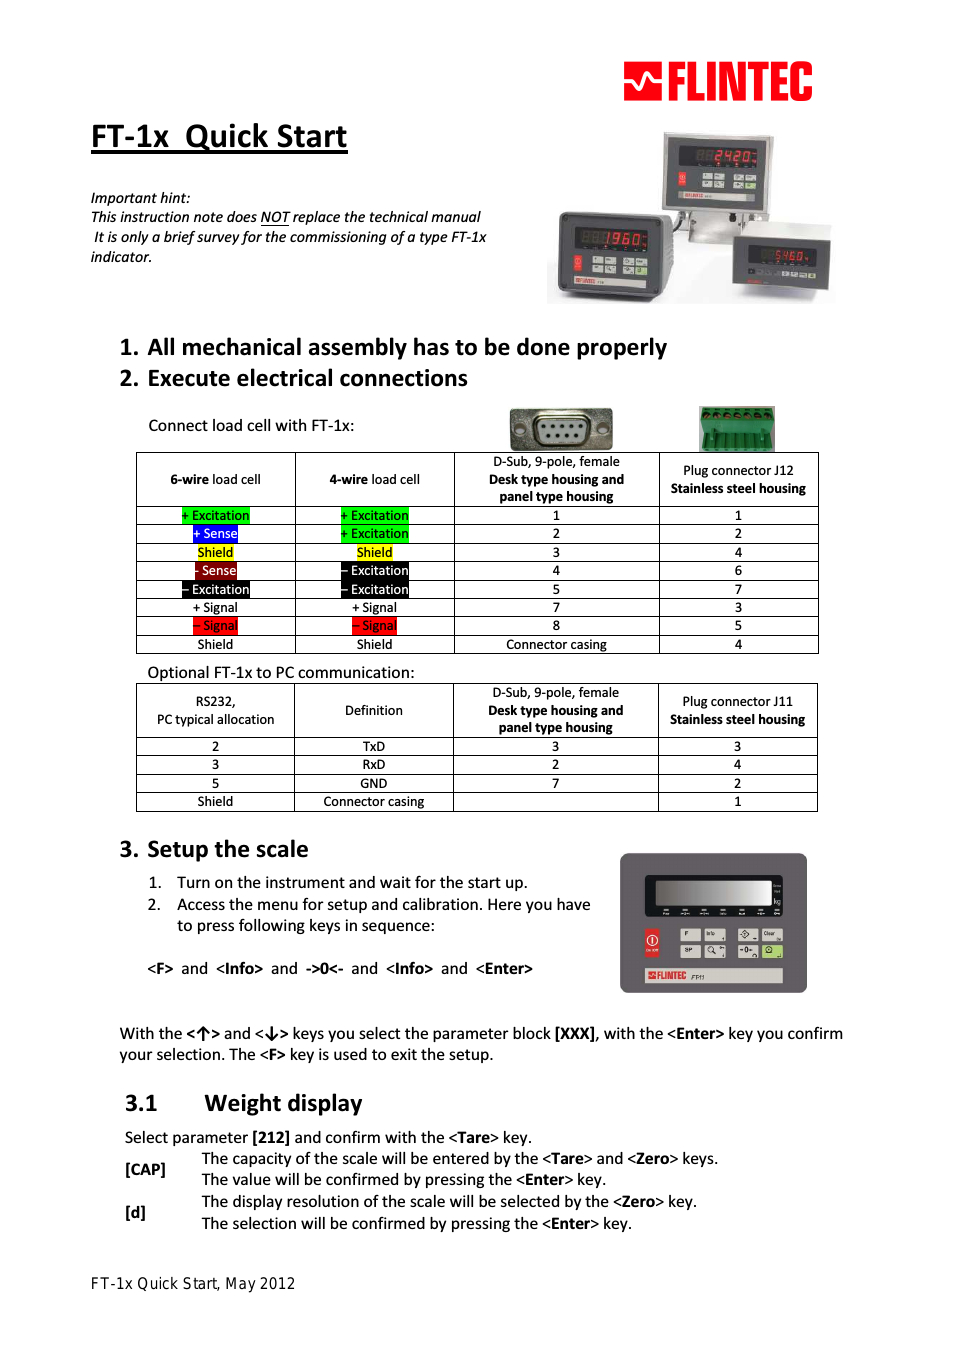 3 wire load cell wiring diagram Collection-3 Wire Load Cell Wiring Diagram Inspirational Magnificent 4 Wire Load Cell Wiring Electrical Circuit 1-r